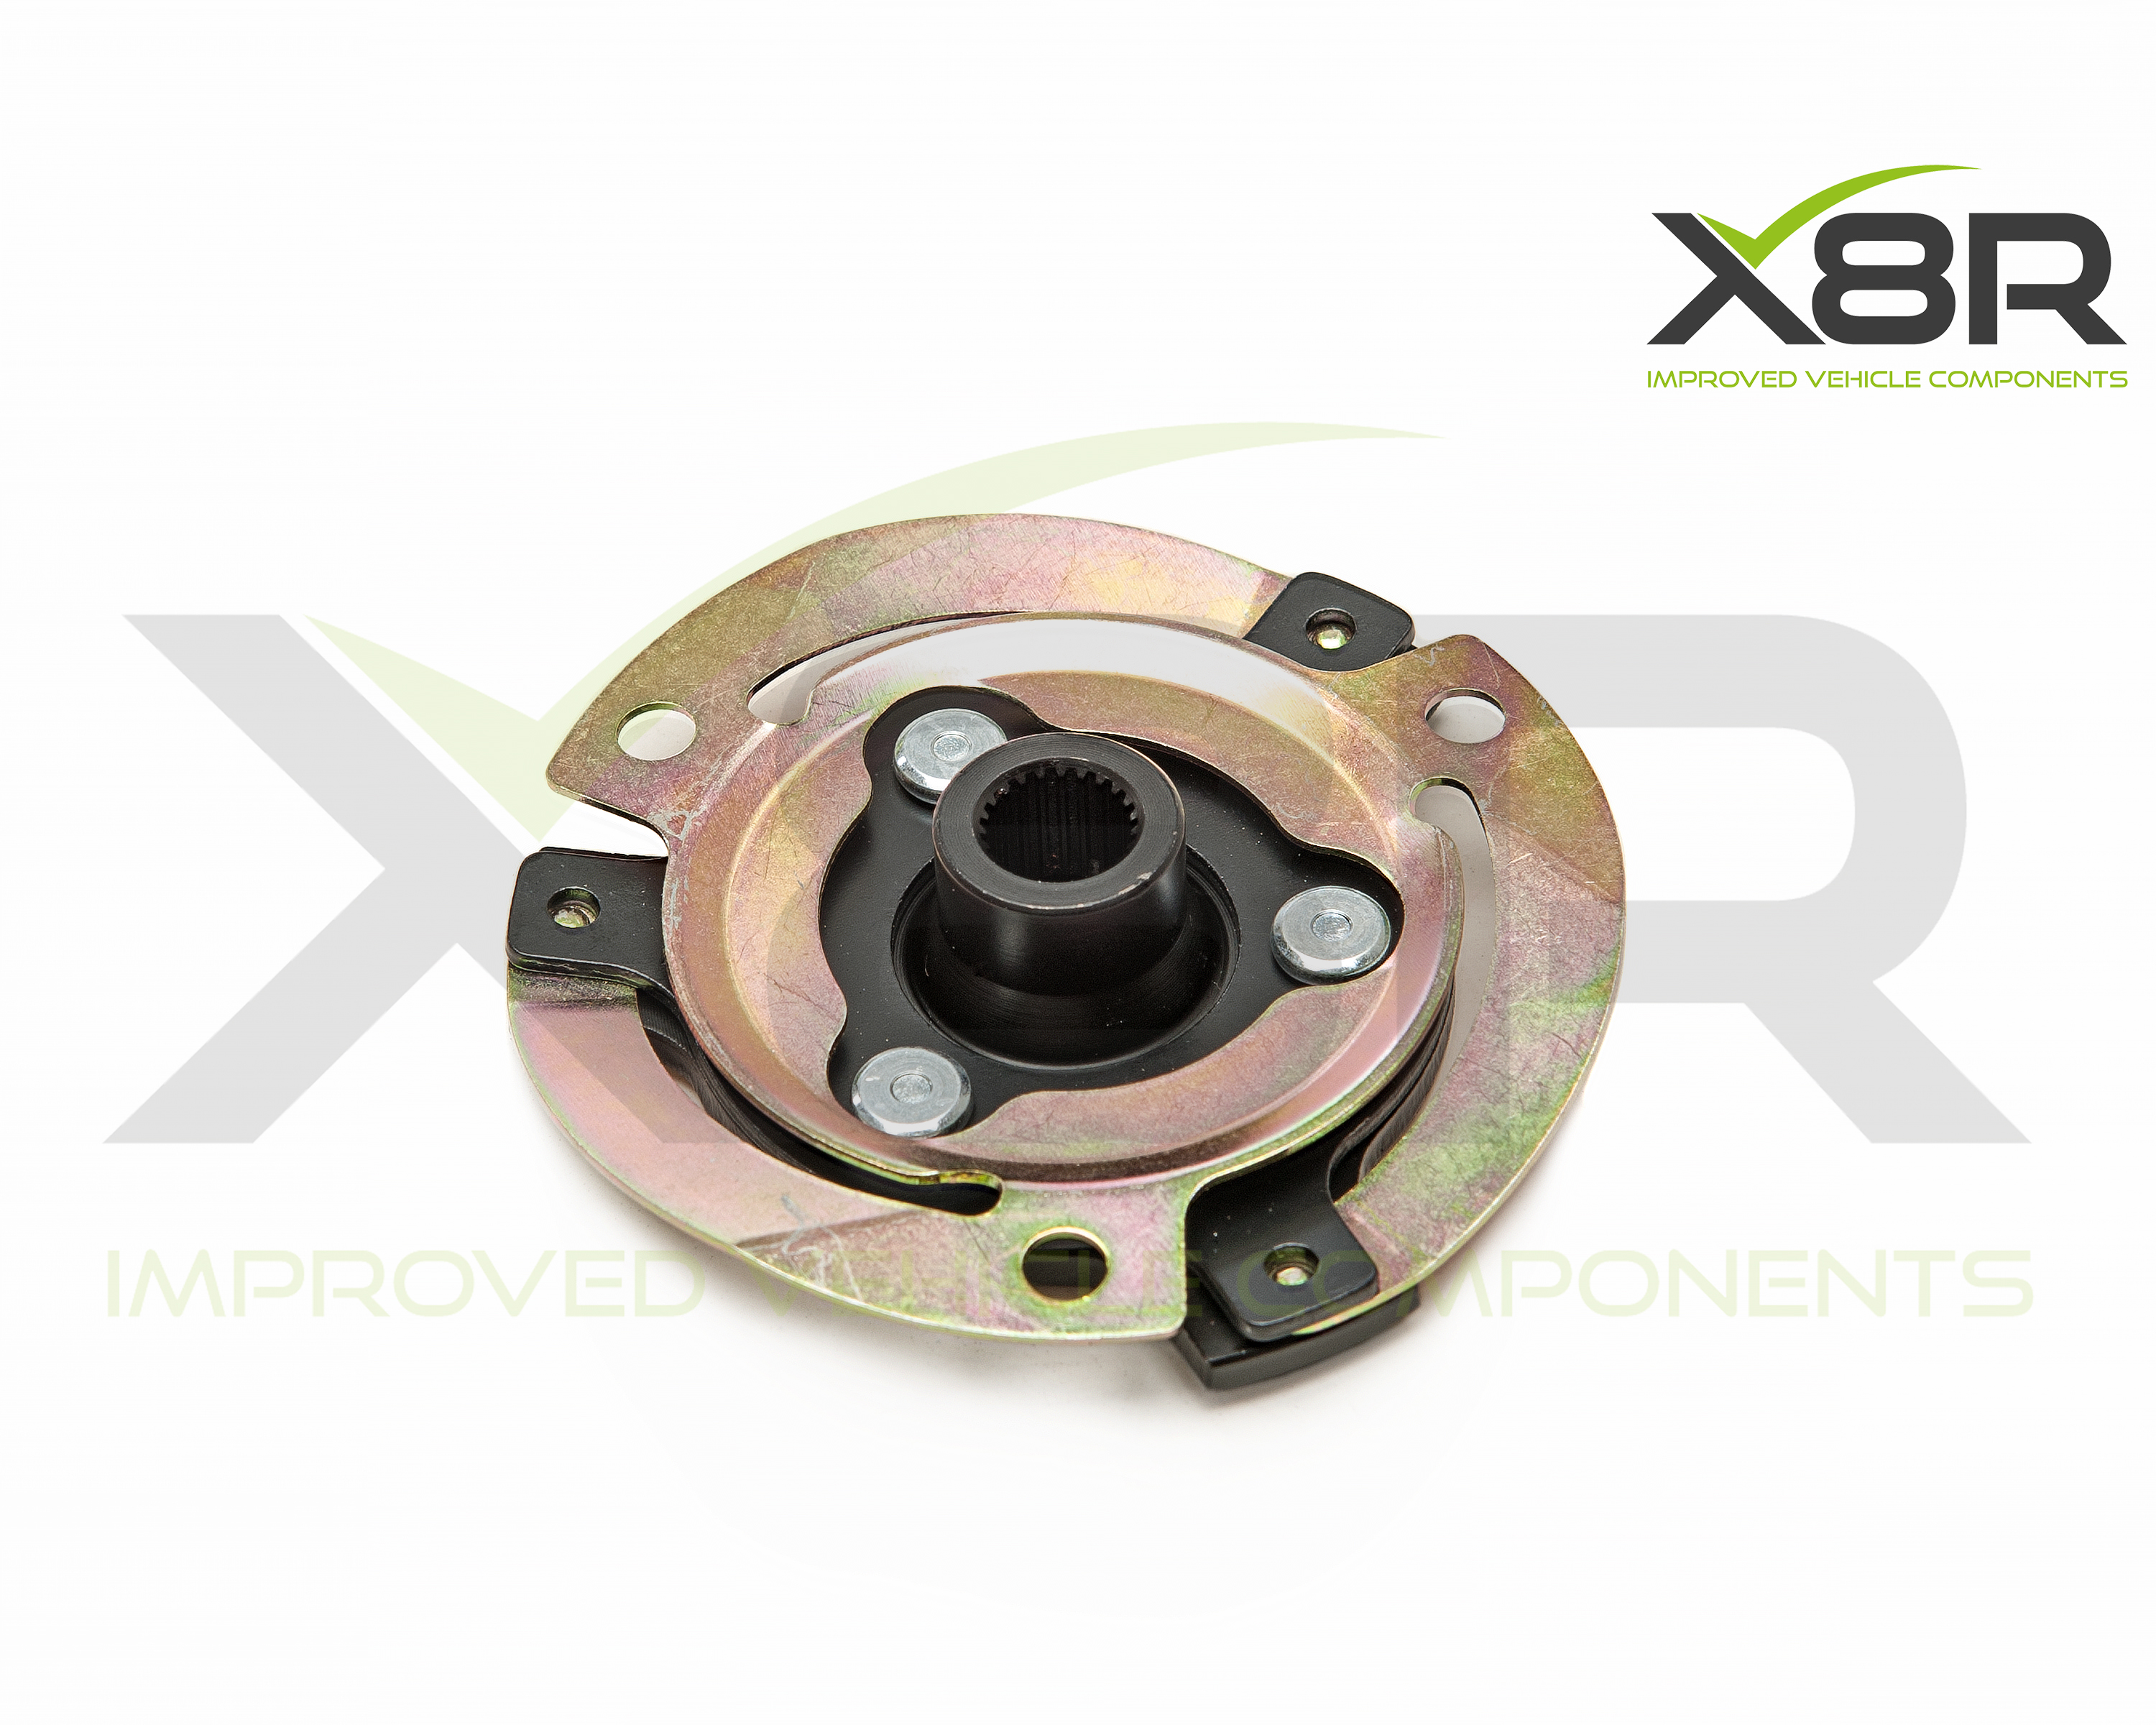 Picture of VW Audi Seat Skoda Air Conditioning Compressor Pump Clutch Hub Plate Disc 5N0820803, 5N0820803A, 5N0820803E, 5K0820803A Repair Fix Kit Instructions Install Guide